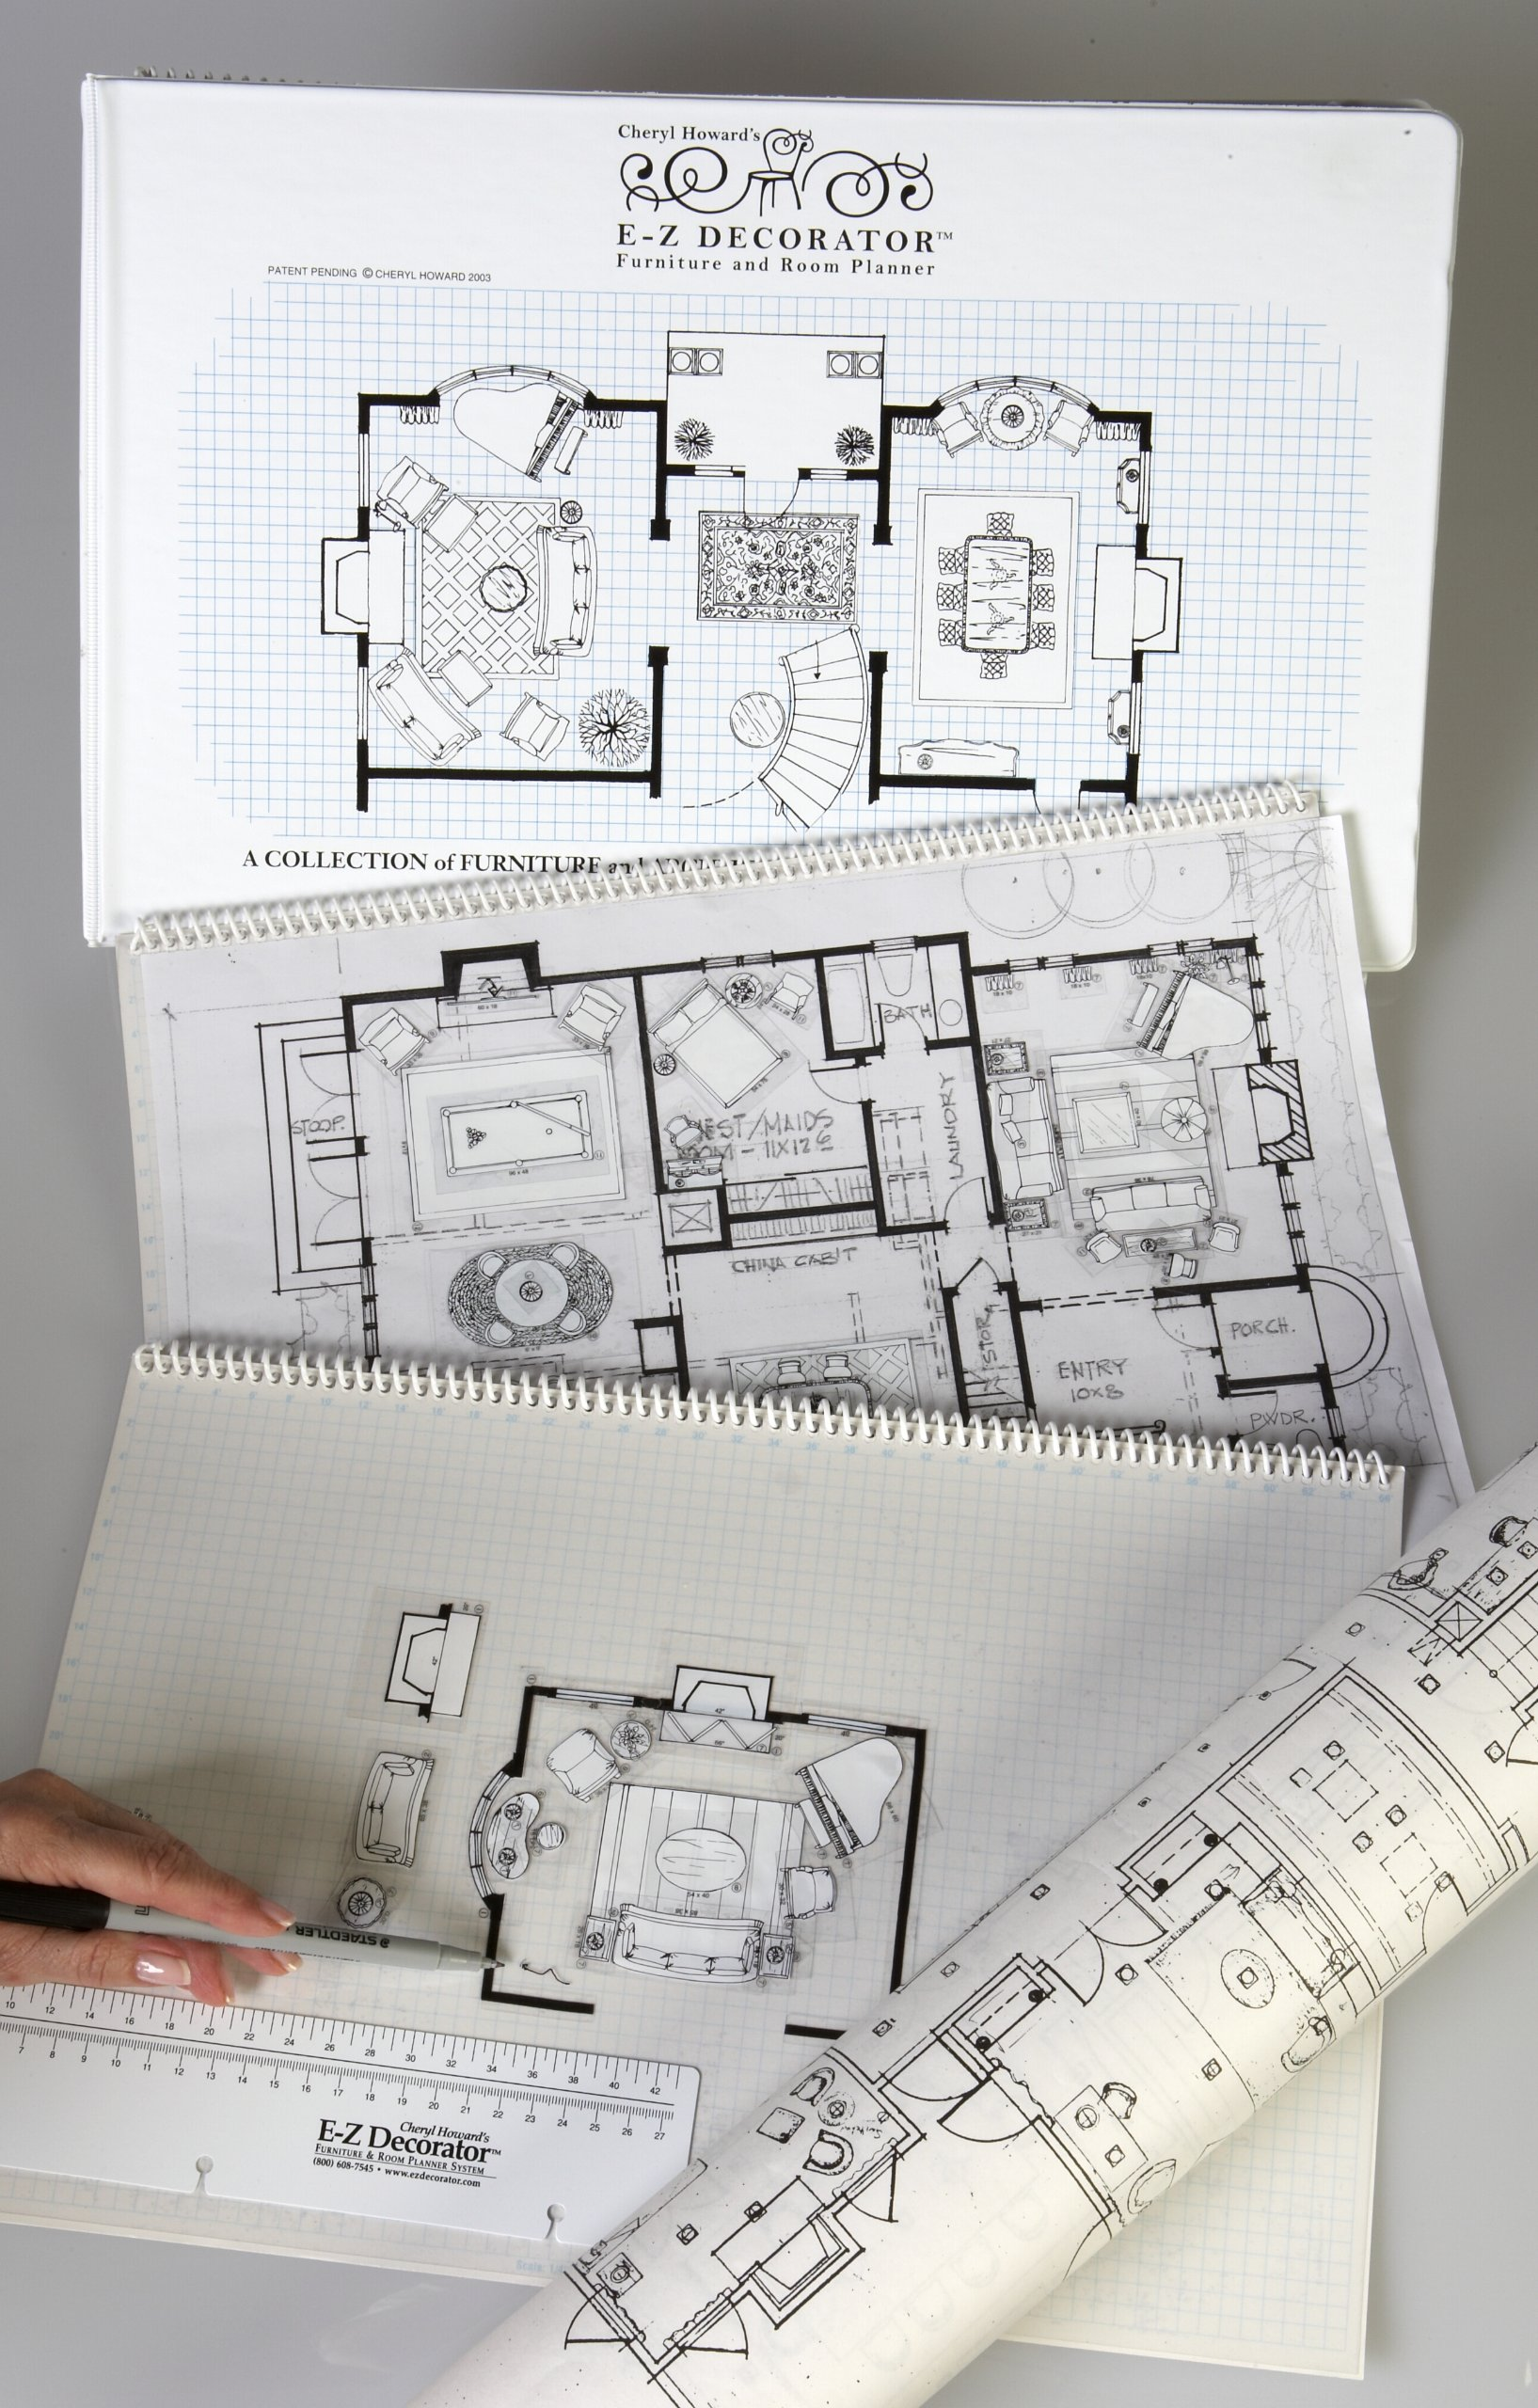 E Z DECORATOR Furniture And Room Planner For Interior Design Projects (E Z  DECORATOR System) Ring Bound U2013 2004